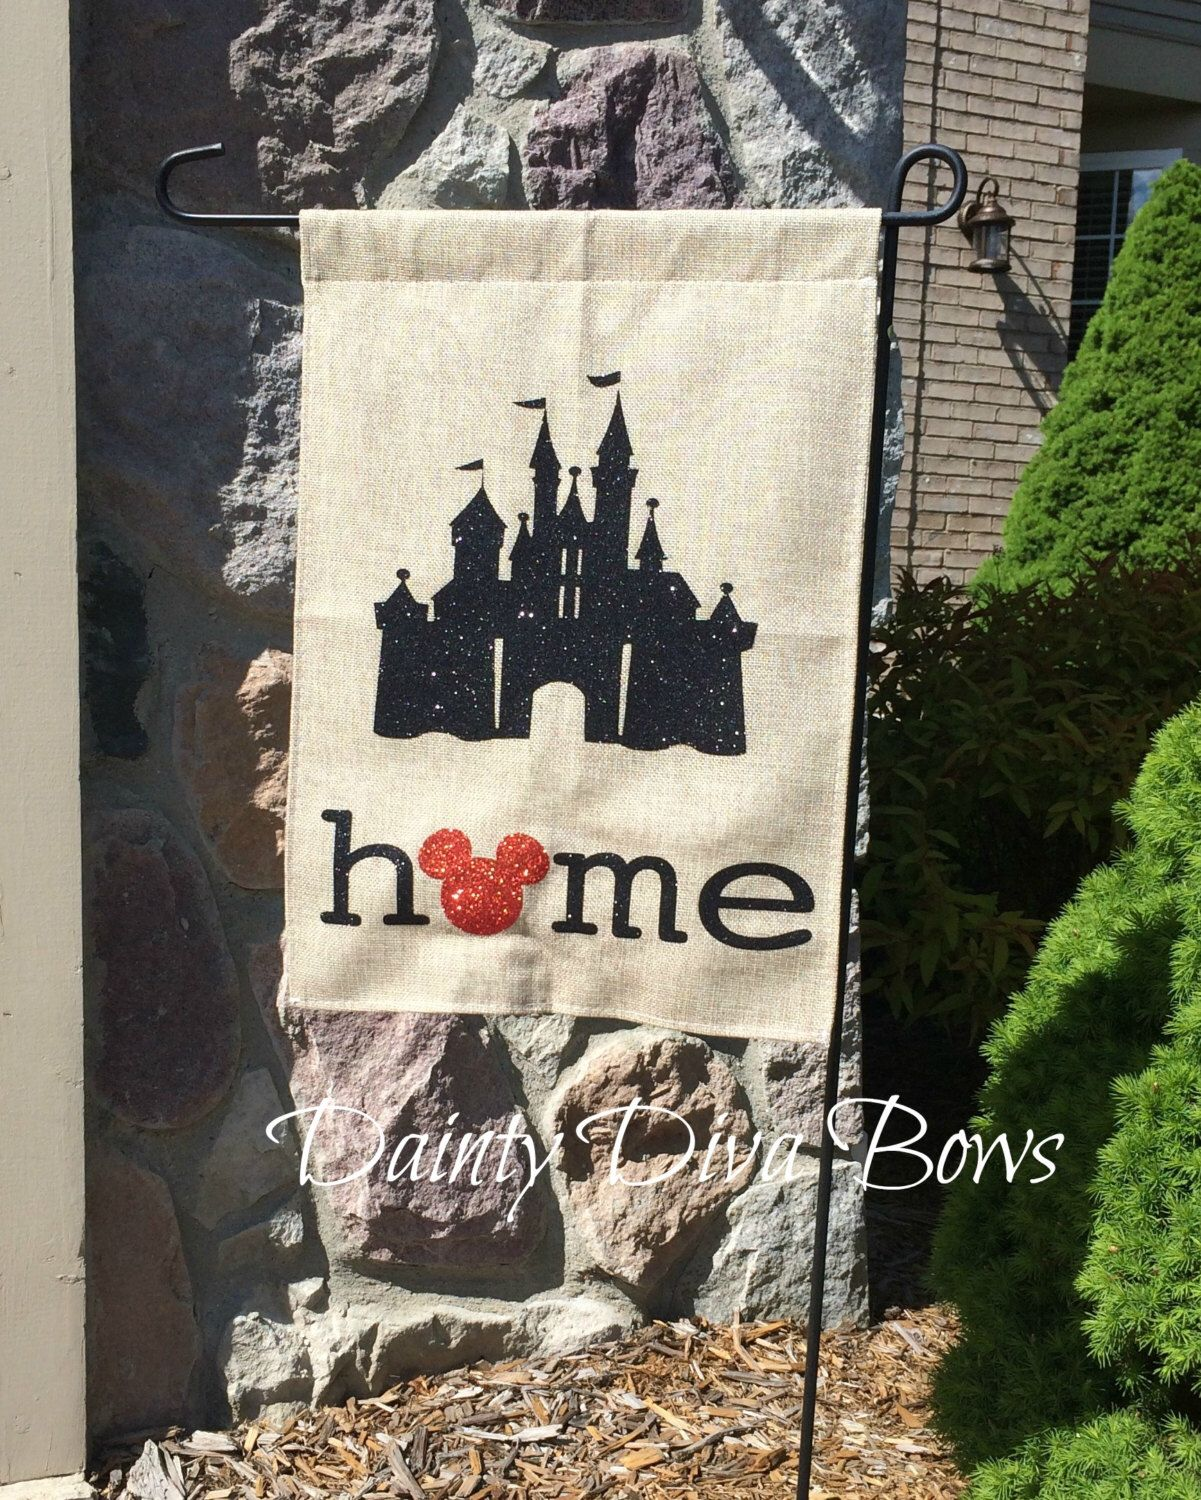 Burlap Garden Flag, Disney Garden Flag, Disney Flag, Burlap Flag, Personalized Garden Flag, Yard Art, New Home Gift, Disney Gift by DaintyDivaBows on Etsy https://www.etsy.com/listing/294345027/burlap-garden-flag-disney-garden-flag